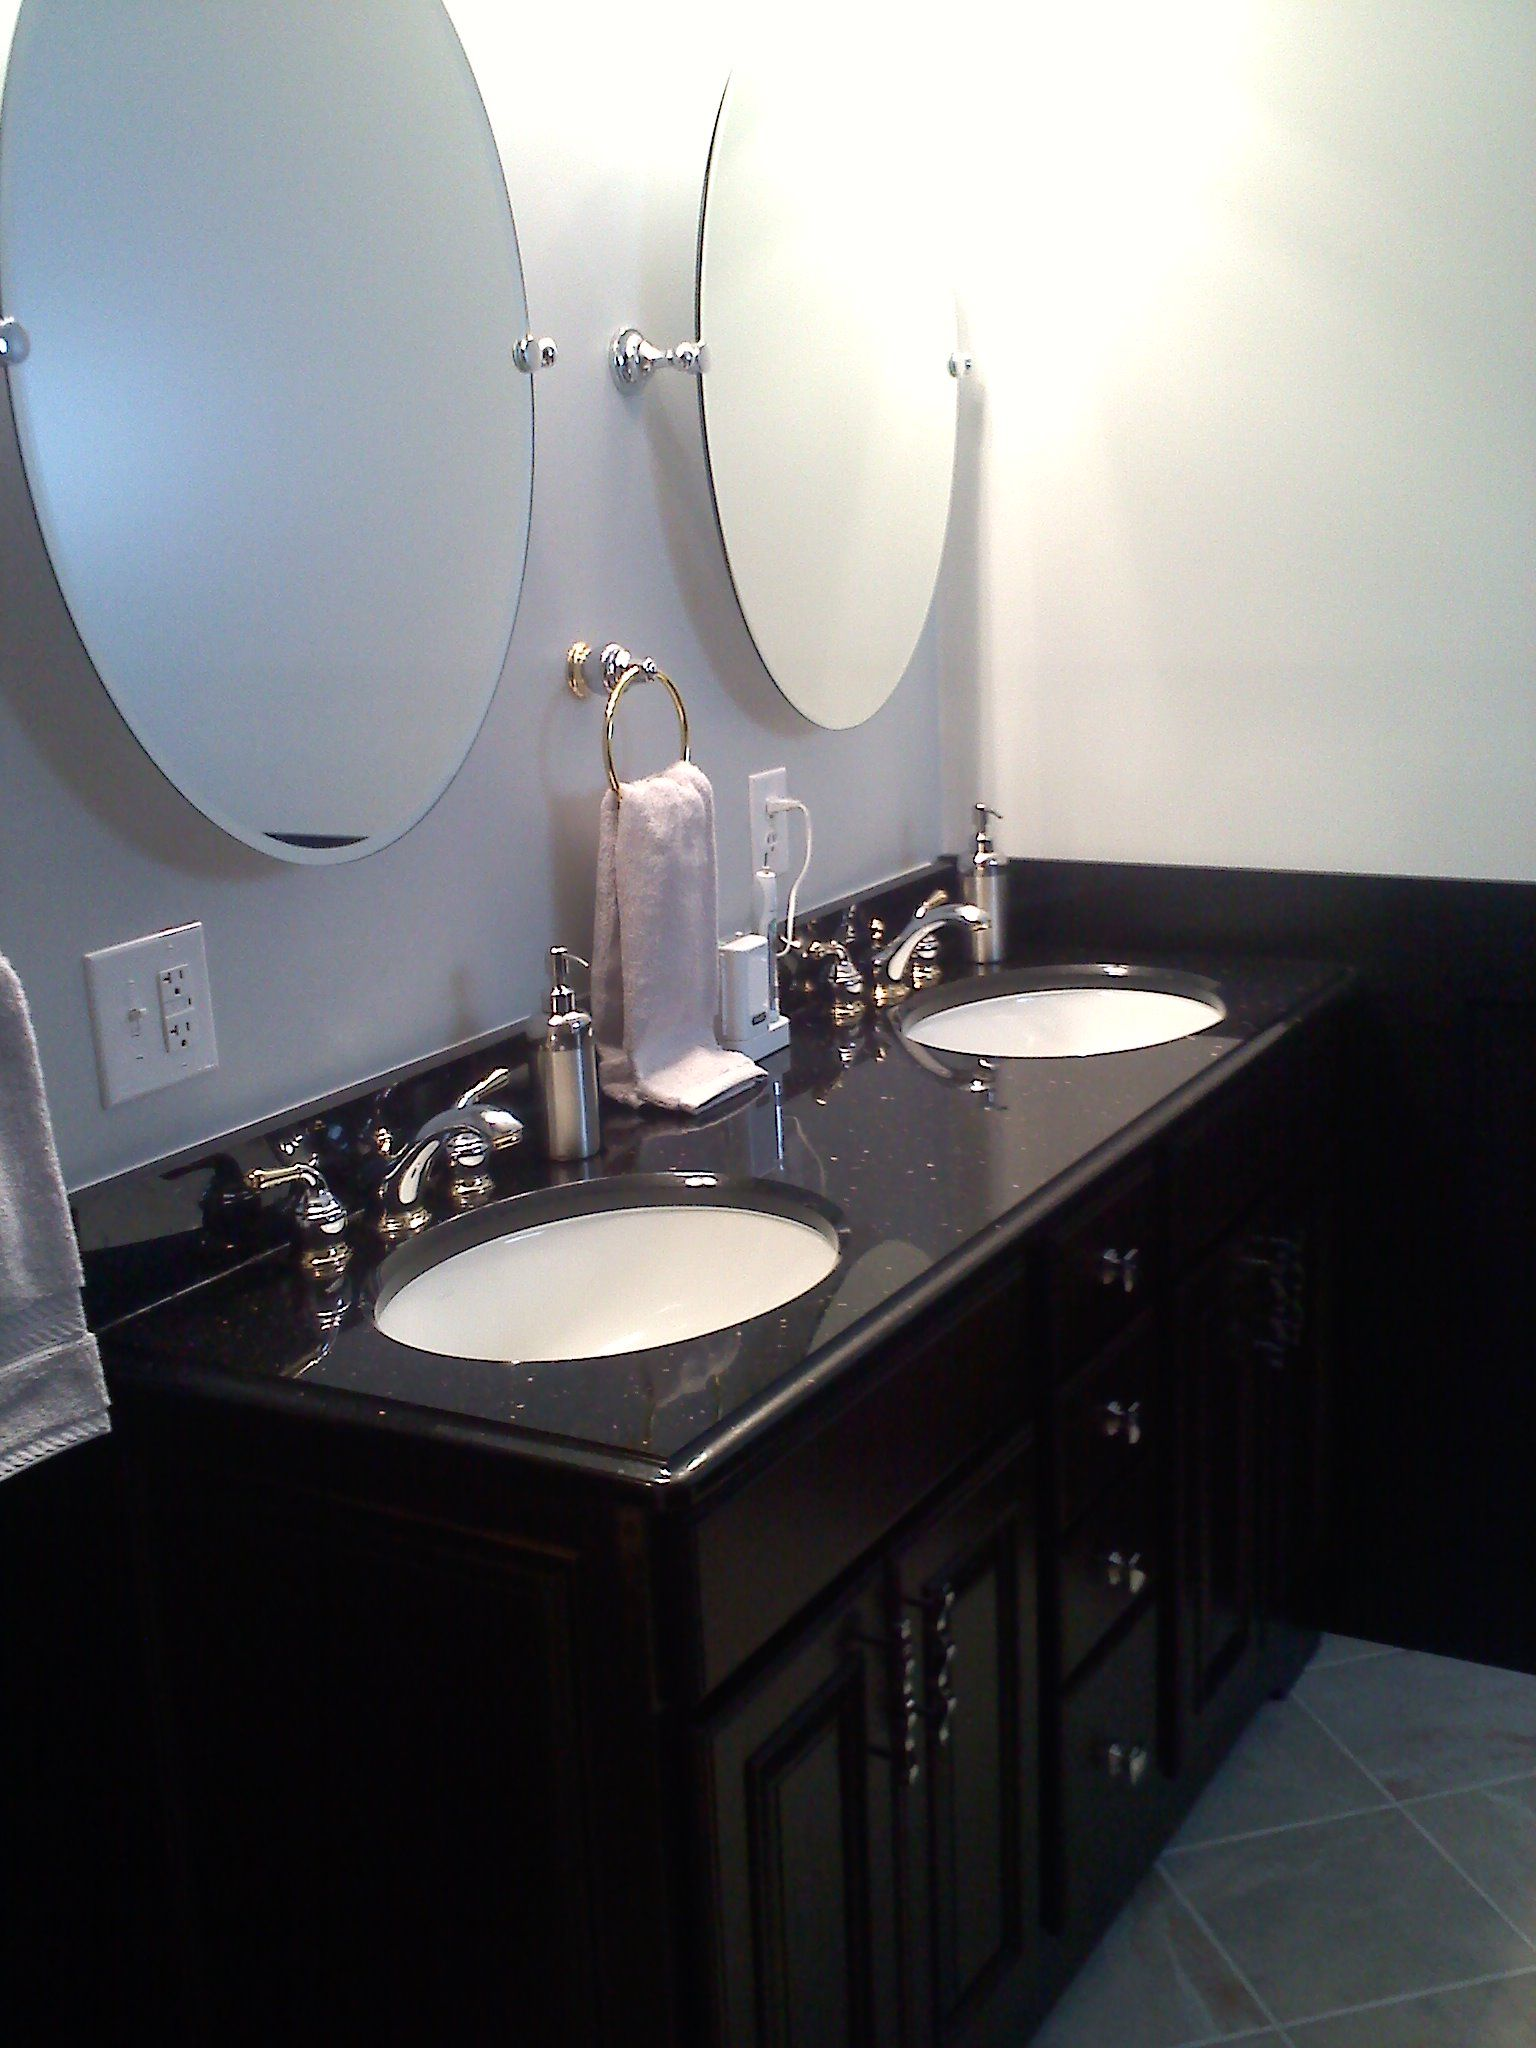 Black Galaxy Granite With Moen Monticello Faucets In Chrome And